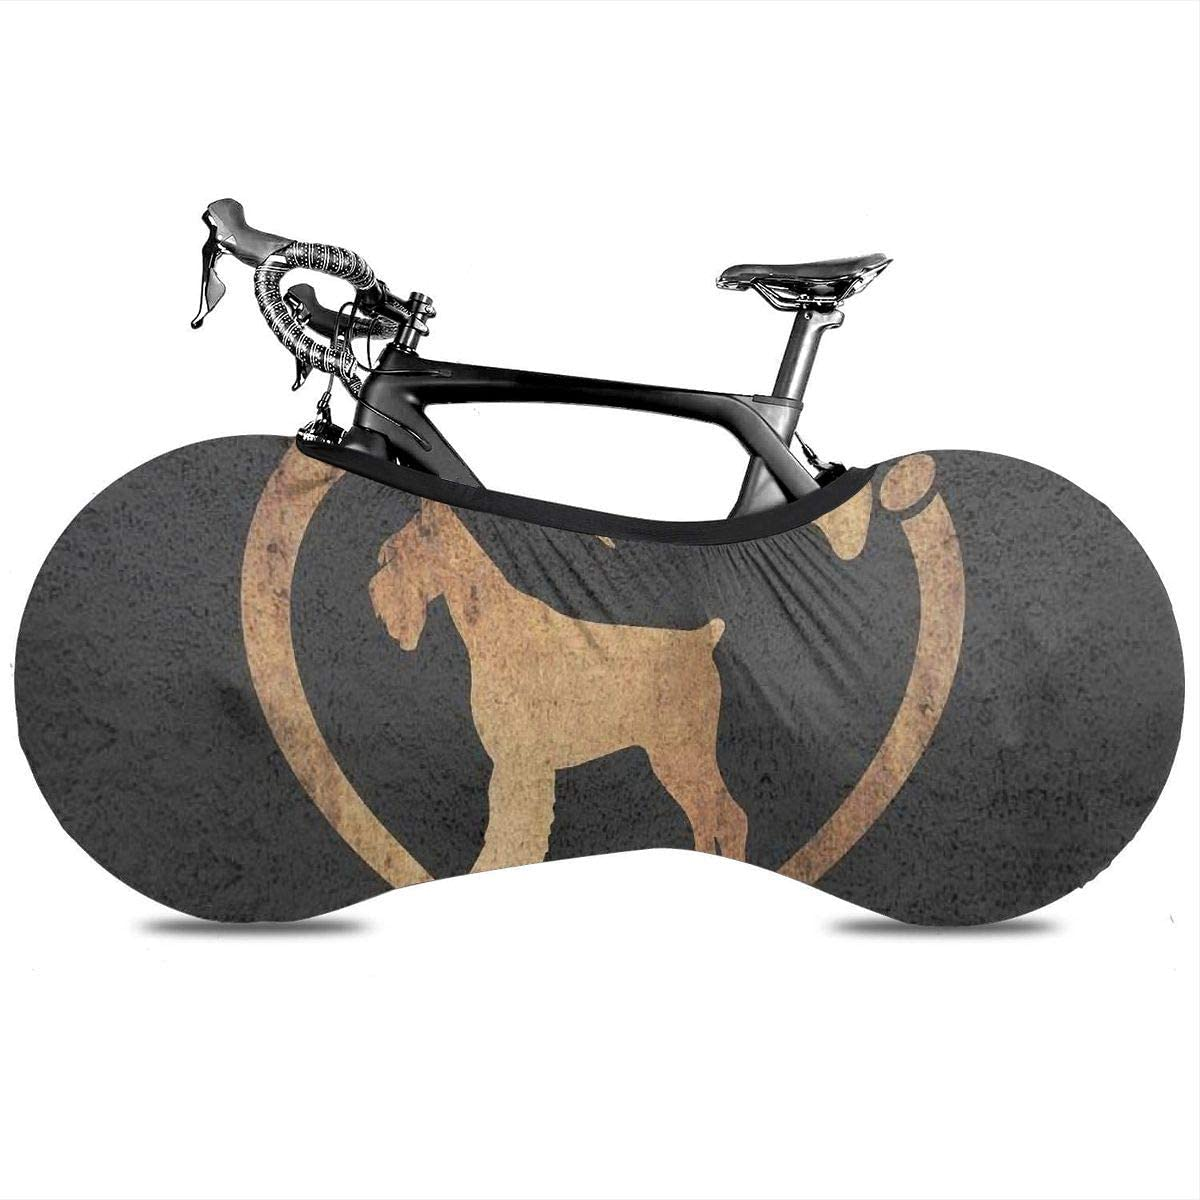 THONFIRE Bike Wheel Cover Jeans Dog Anti-dust Storage Bag Outdoor Scratch-Proof for Mountain Road Electric Tricycle